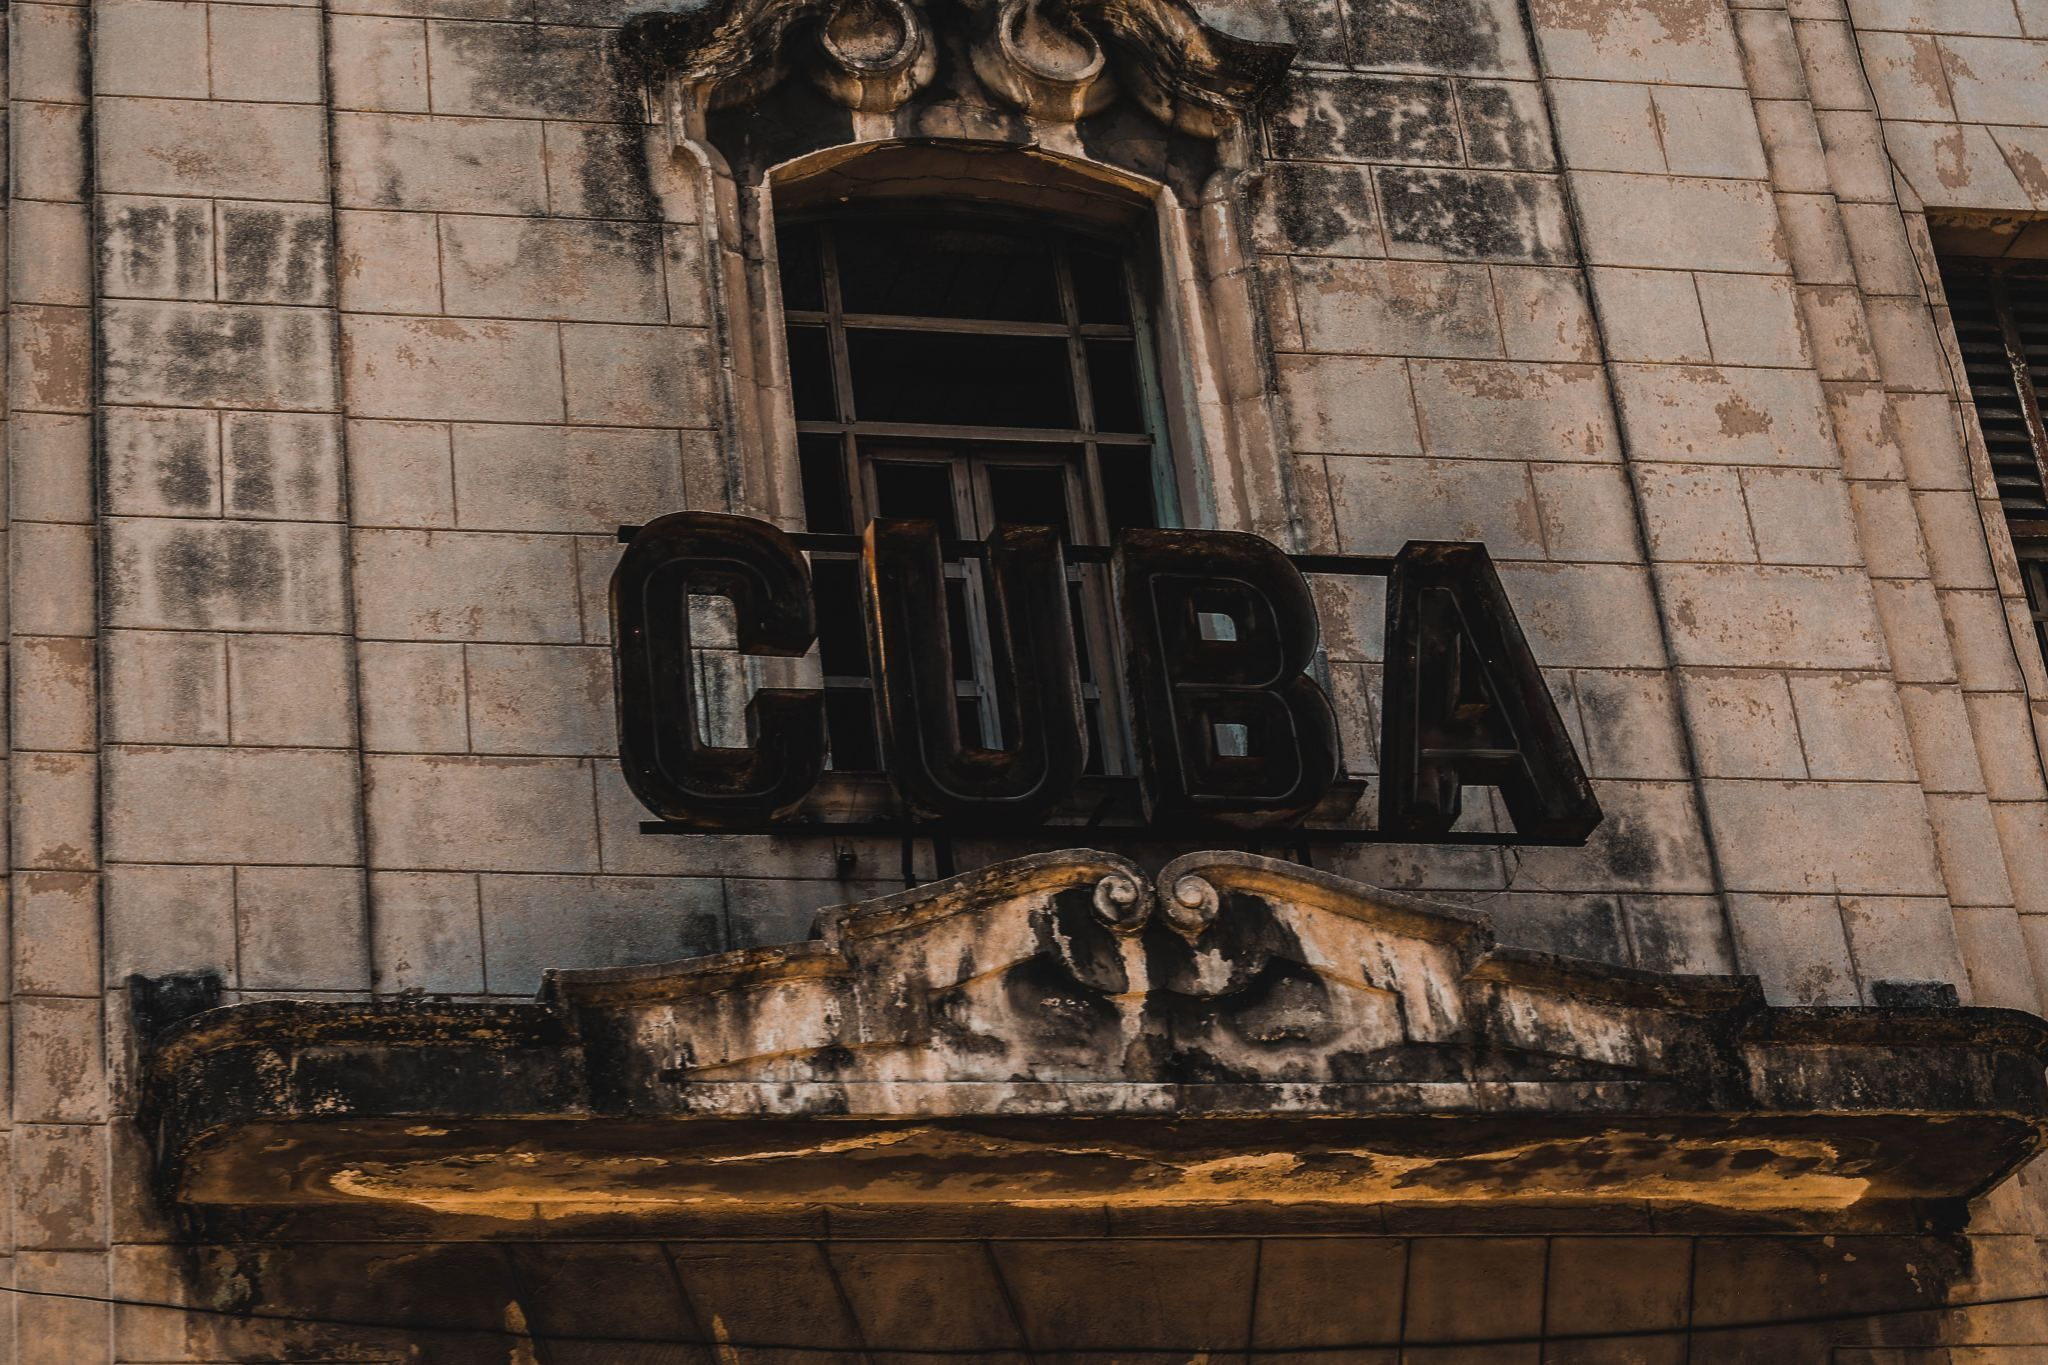 Why You Need To Visit Cuba #visitcuba Why You Need To Visit Cuba - Inthefrow #visitcuba